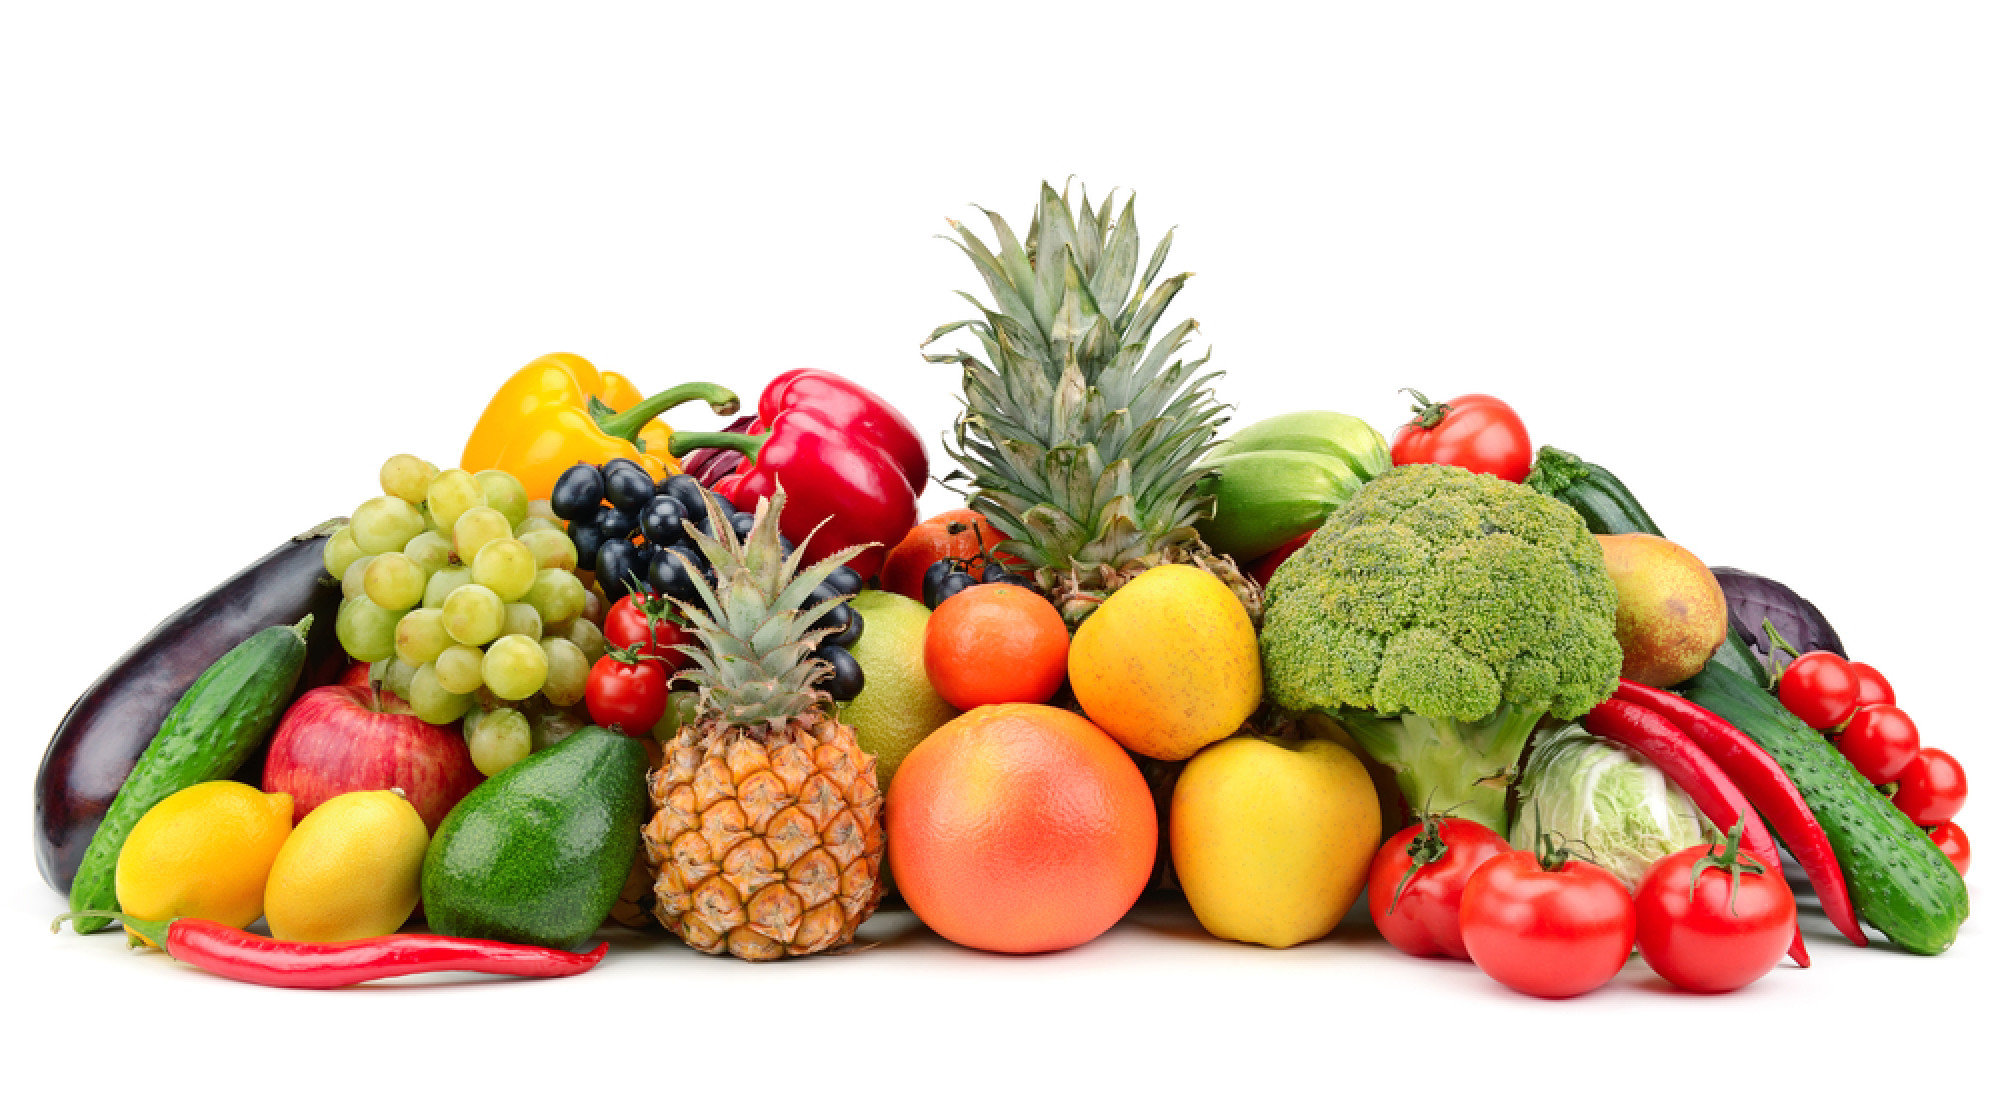 fruit and vegetables Fruits and vegetables provide children with the necessary vitamins, minerals and fiber that their growing bodies need to develop properly a diet high in fruits and vegetables may also decrease the risk of obesity while increasing school performance.